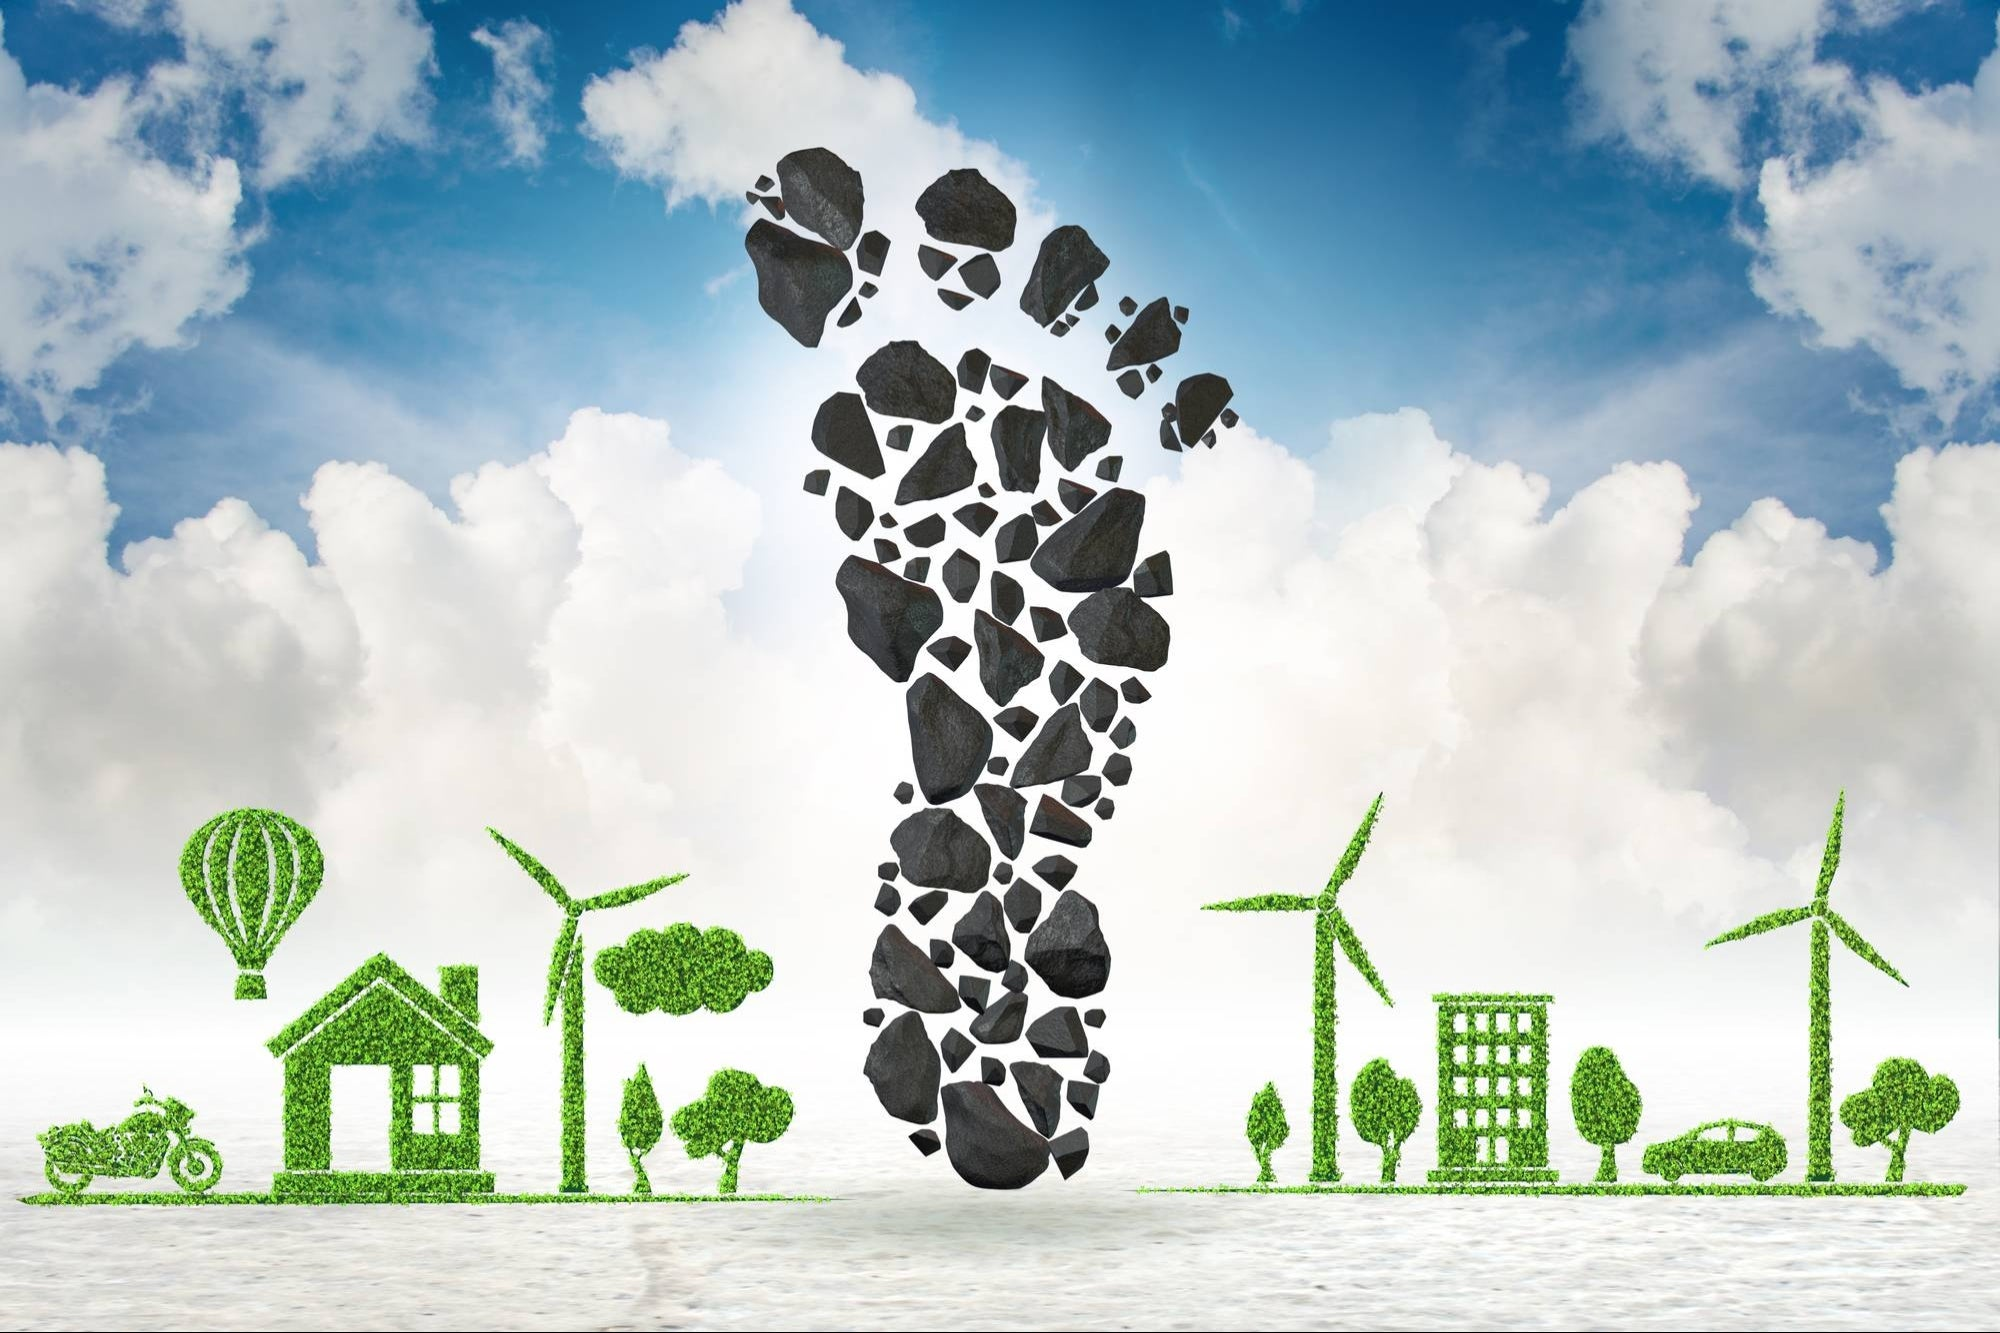 Do you want to know what your carbon footprint is? Mastercard presented a tool to calculate it